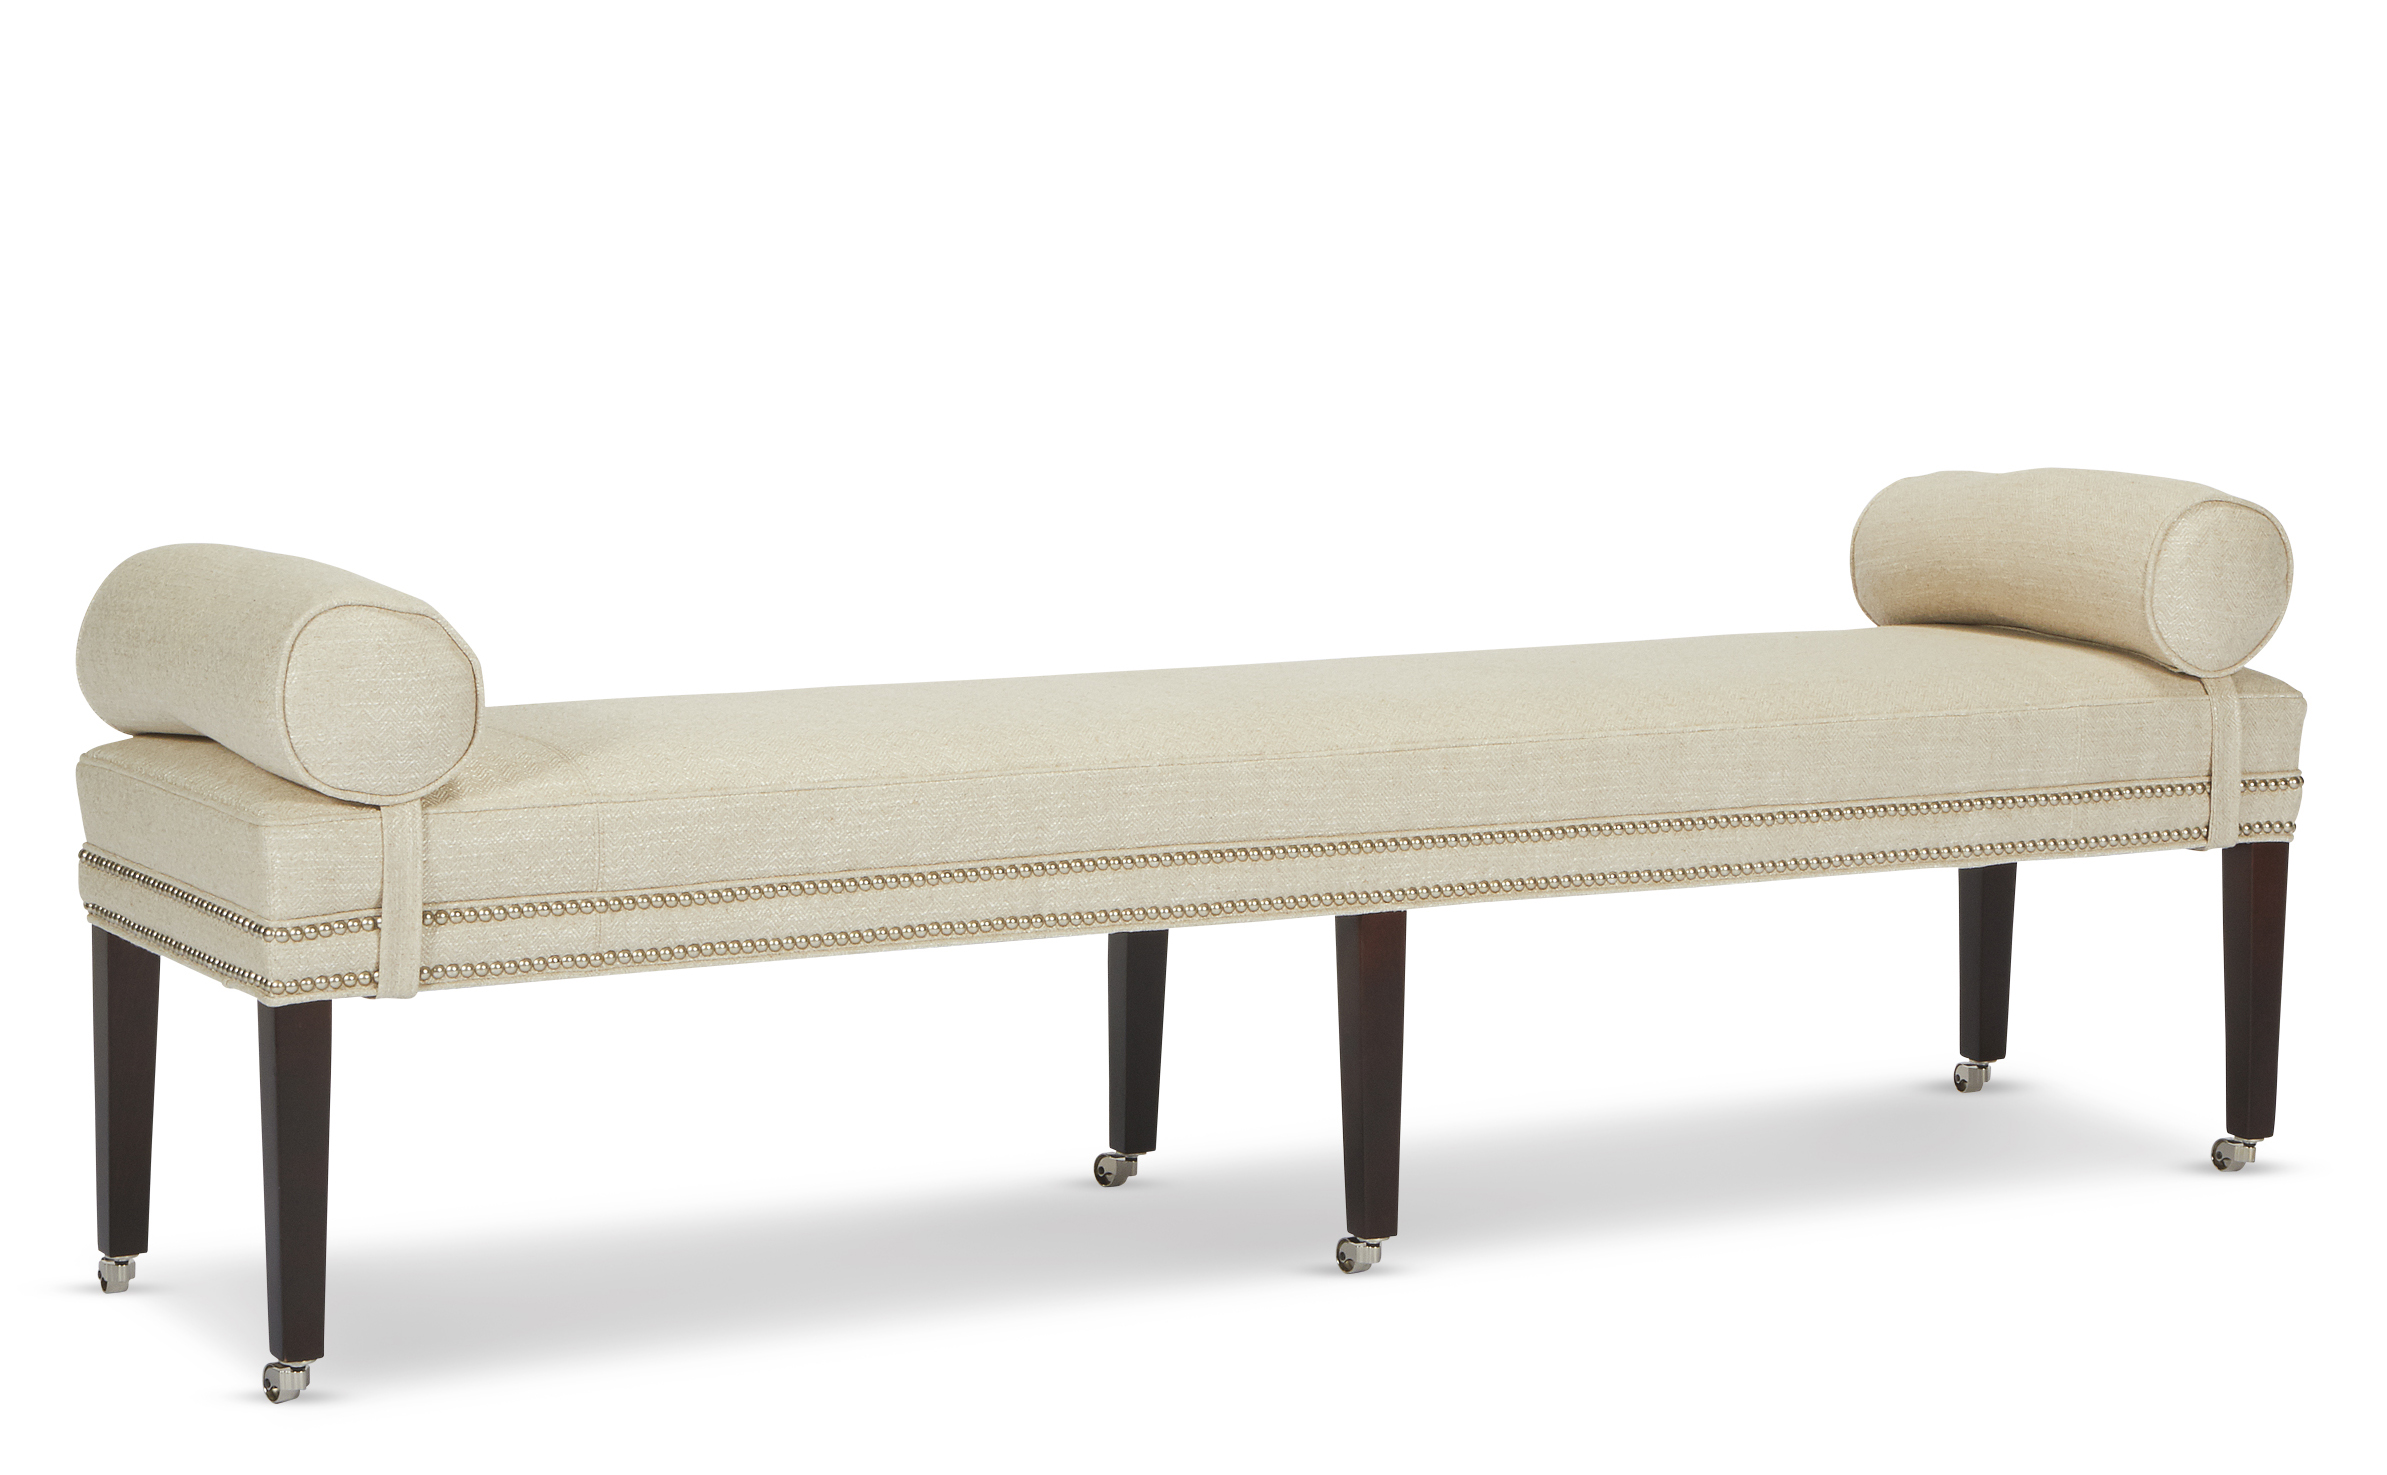 Superieur Brunswick King Bench : Living Room : Ottomans U0026 Benches : Taylor King  Furniture | Robb U0026 Stucky